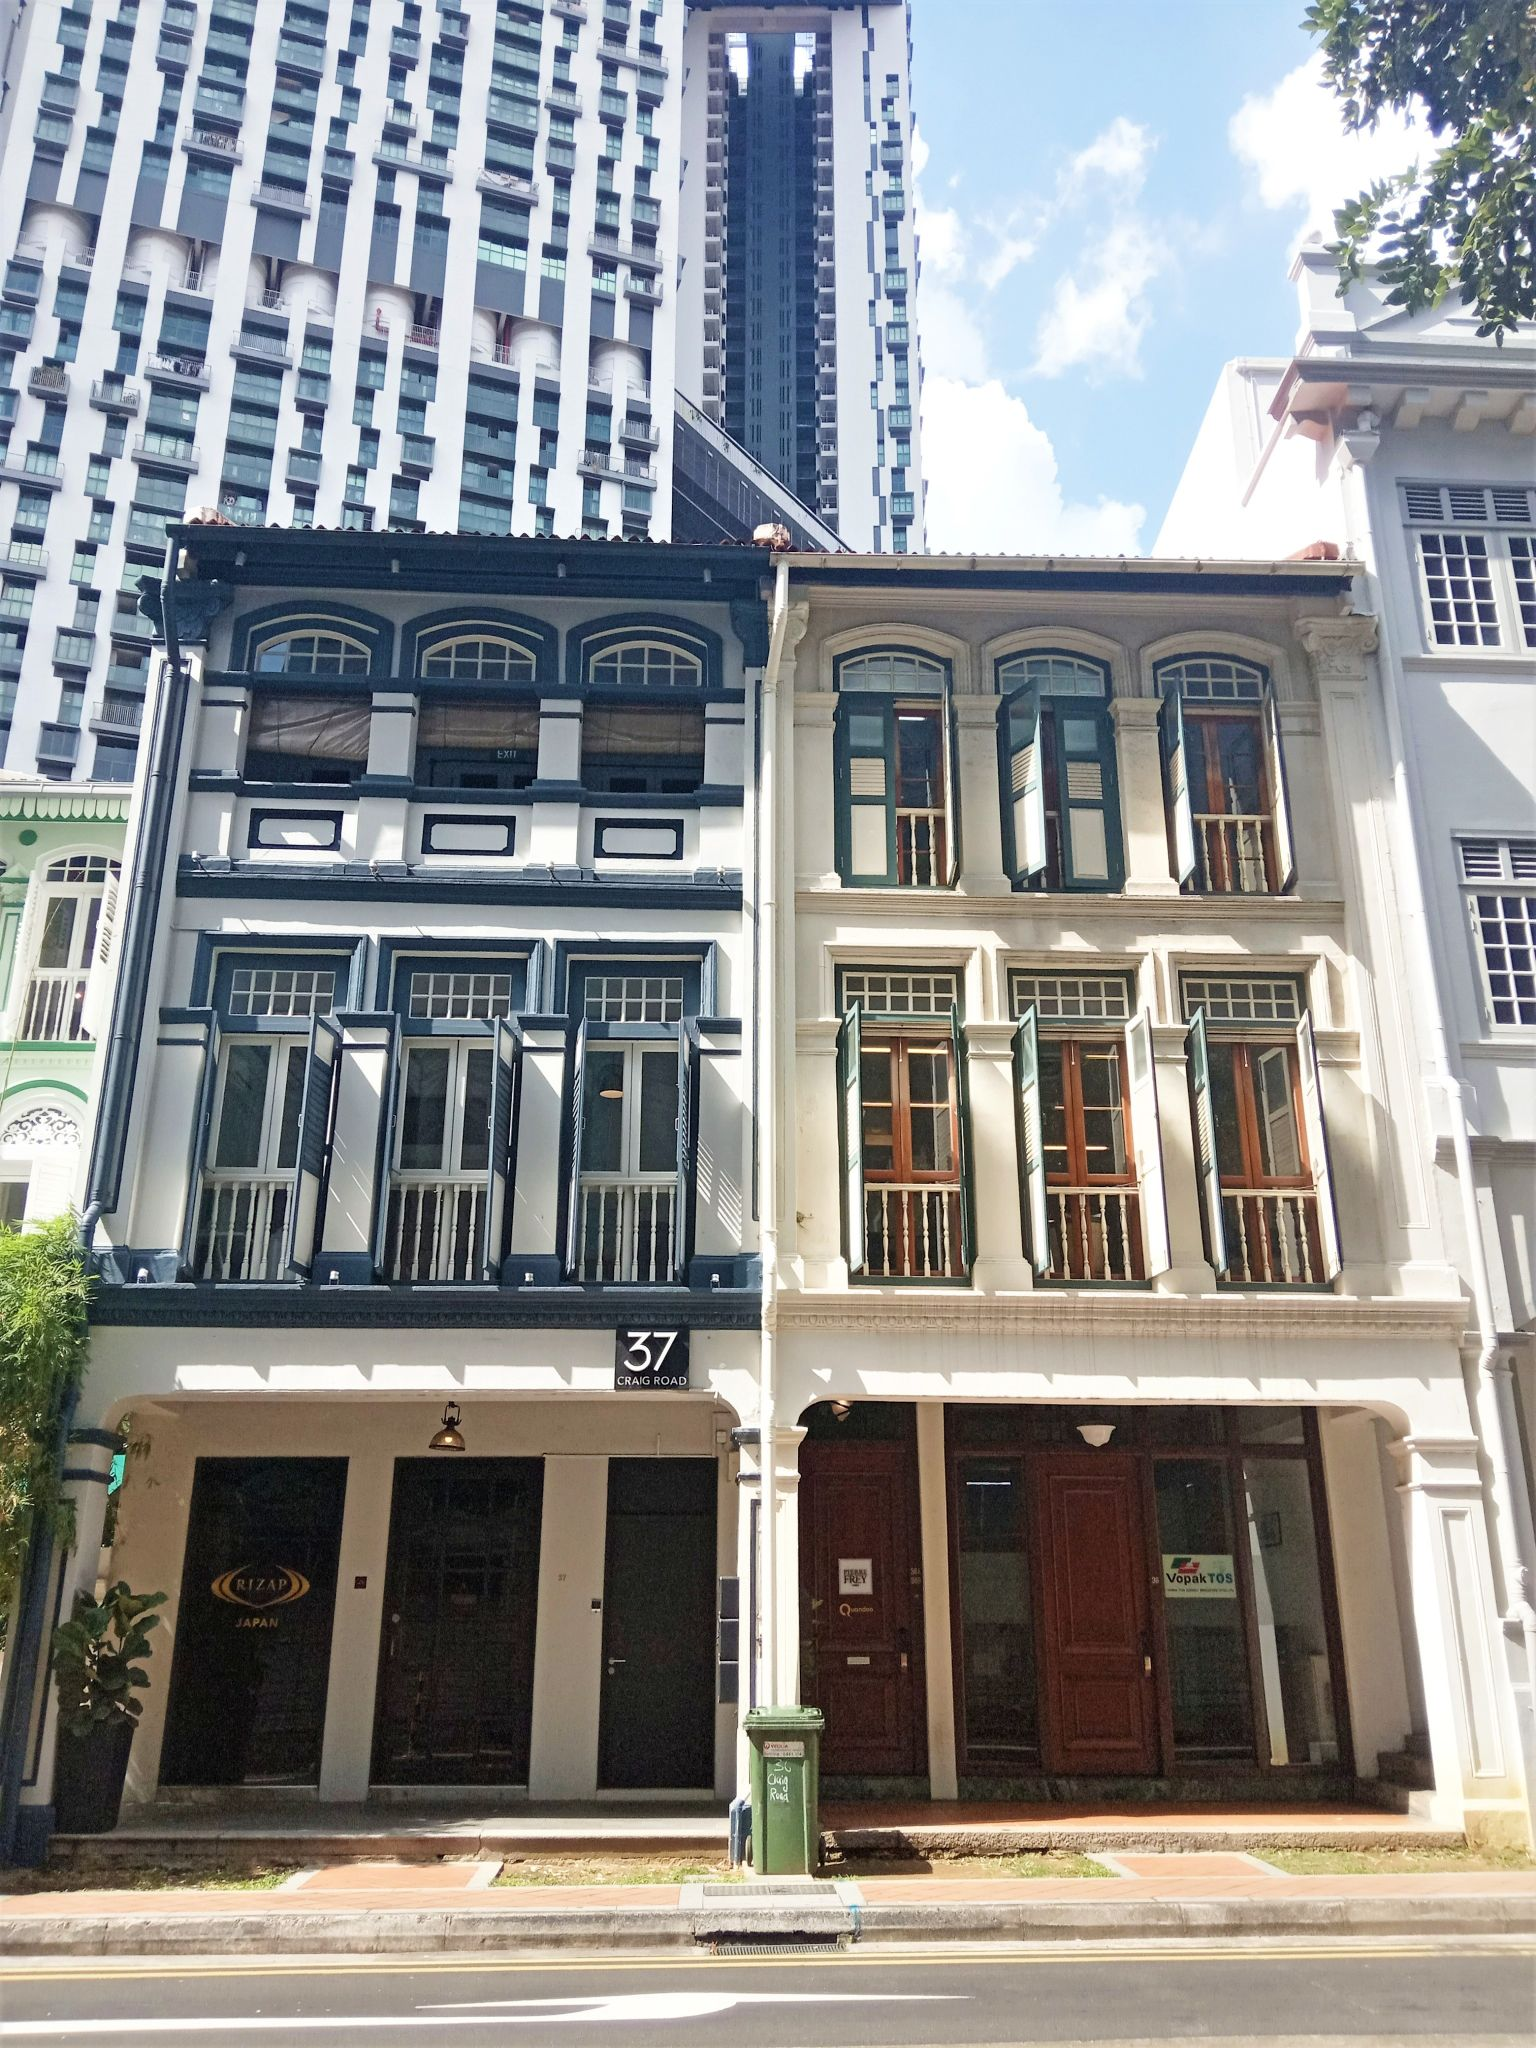 8M Real Estate - Real Estate Investment Company